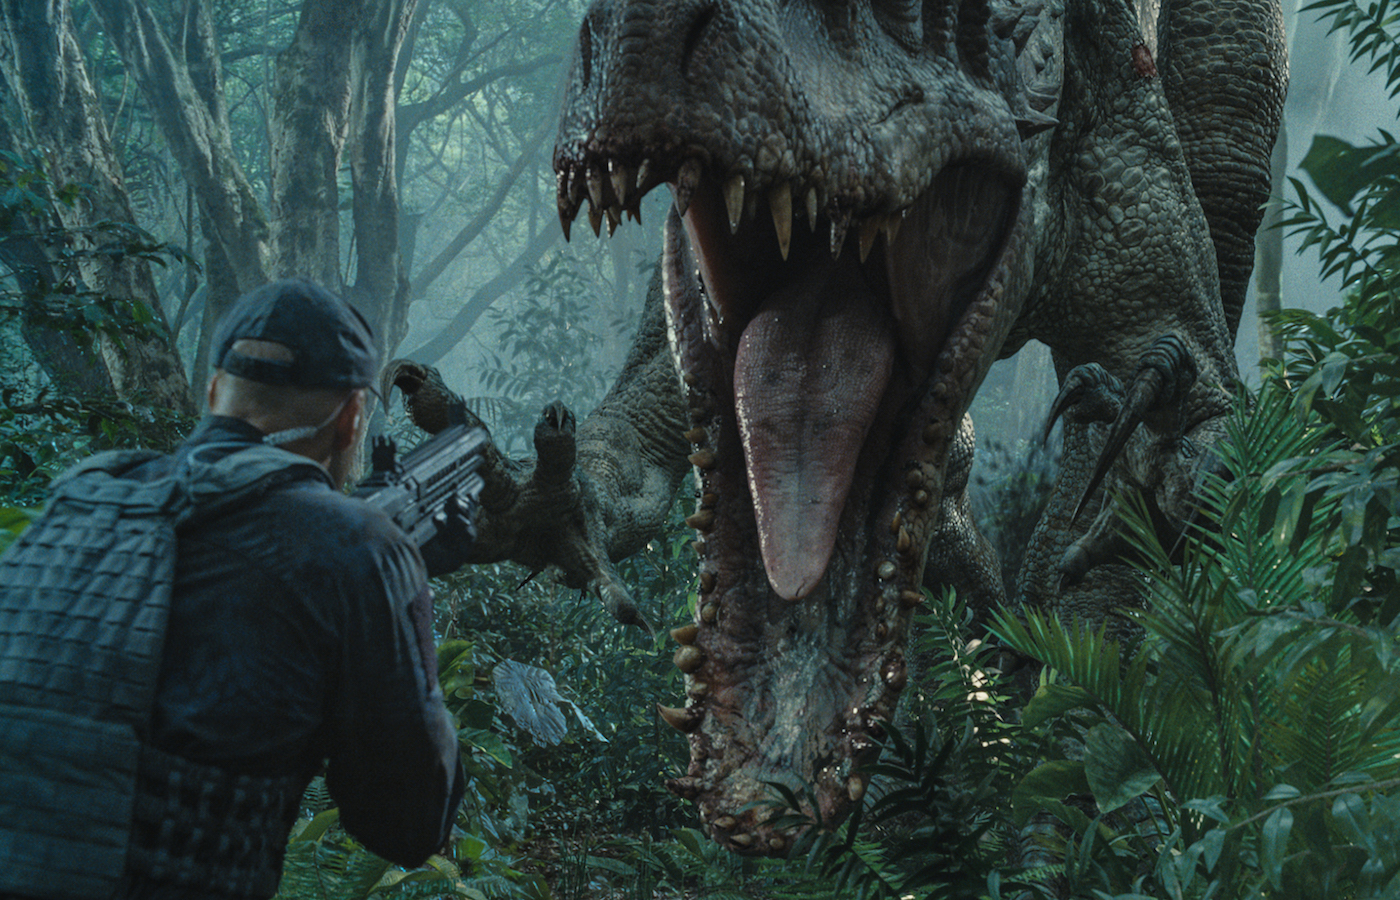 jurassic-world-indominous-rex-image.jpg